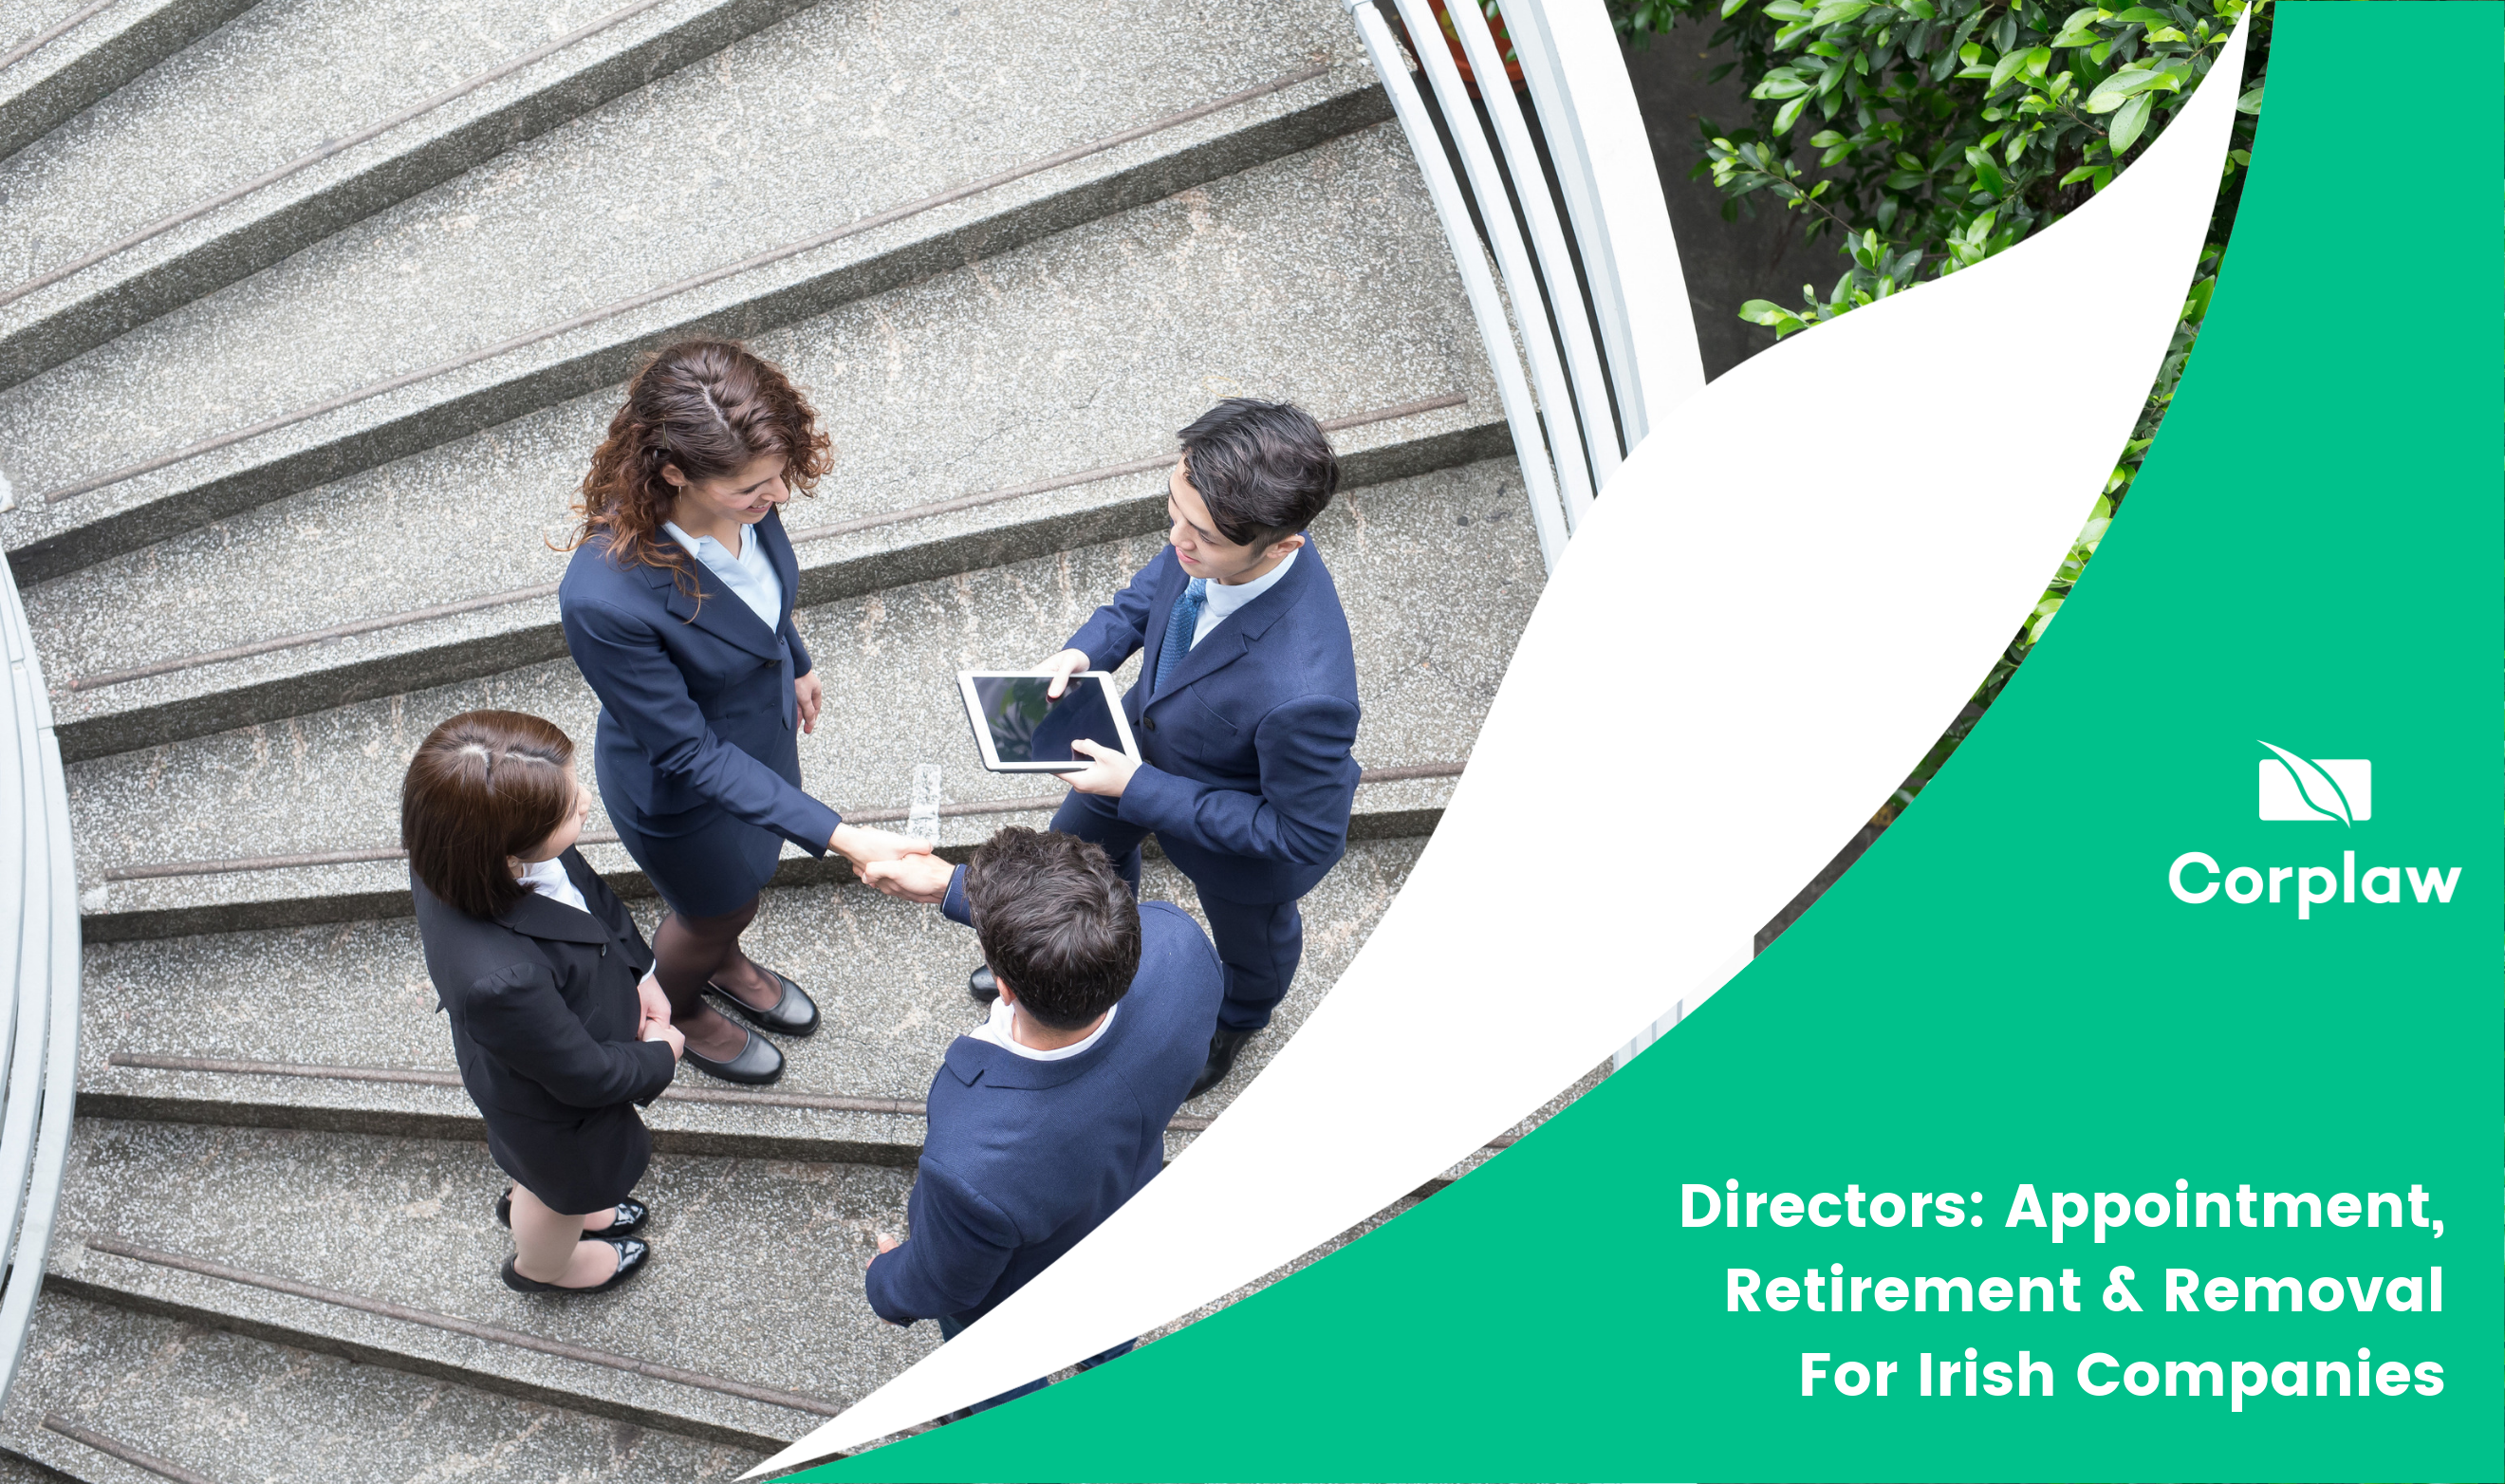 Directors_ Appointment, Retirement & Removal For Irish Companies